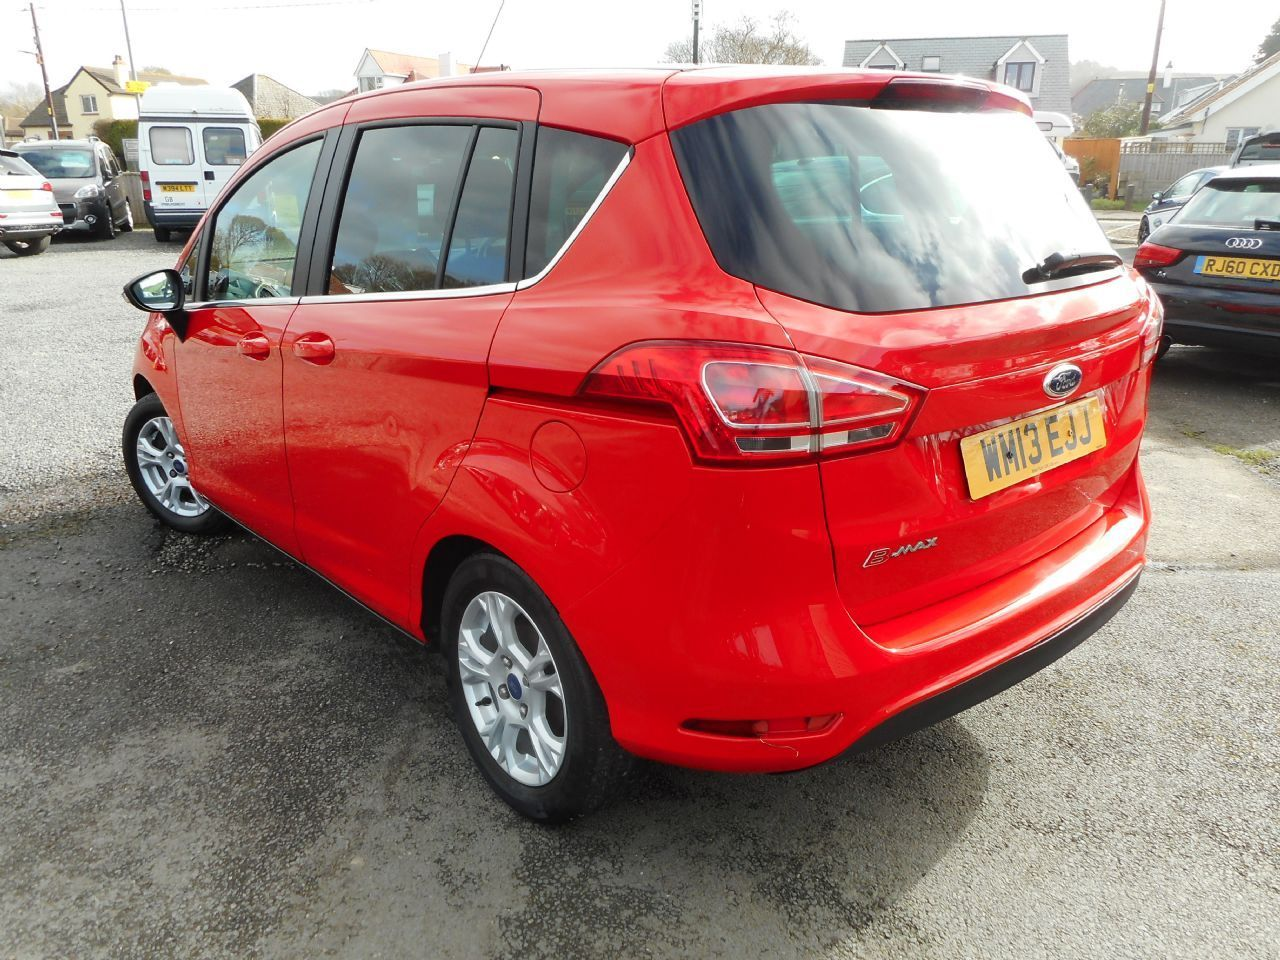 FORD B-MAX 1.4 90PS Zetec (2013) - Picture 8